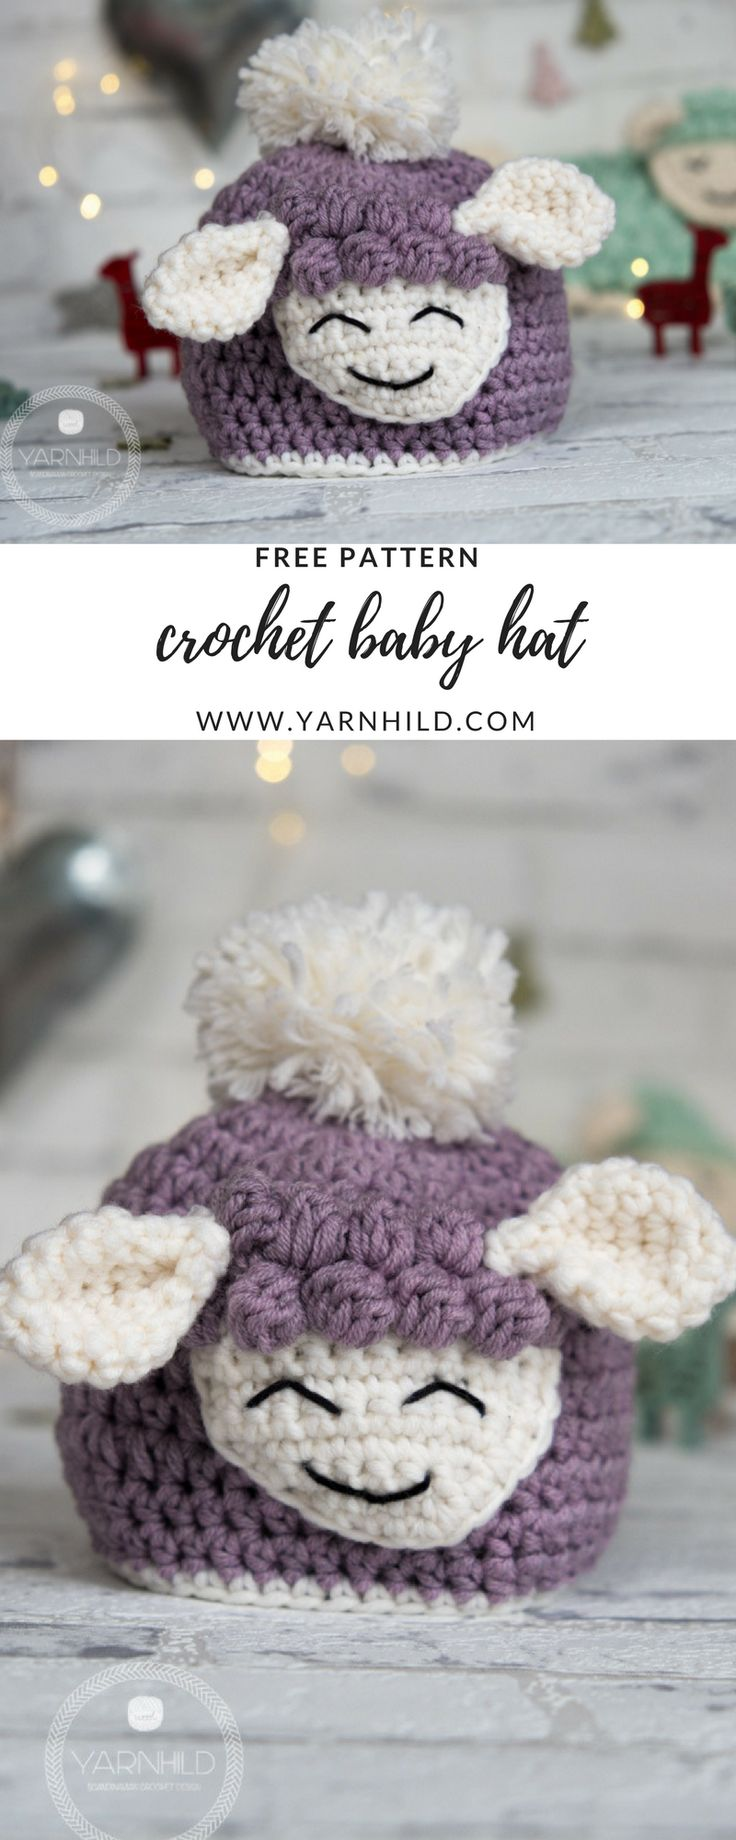 Crochet Baby Hat - Sverre the Lamb. Free pattern on yarnhild.com